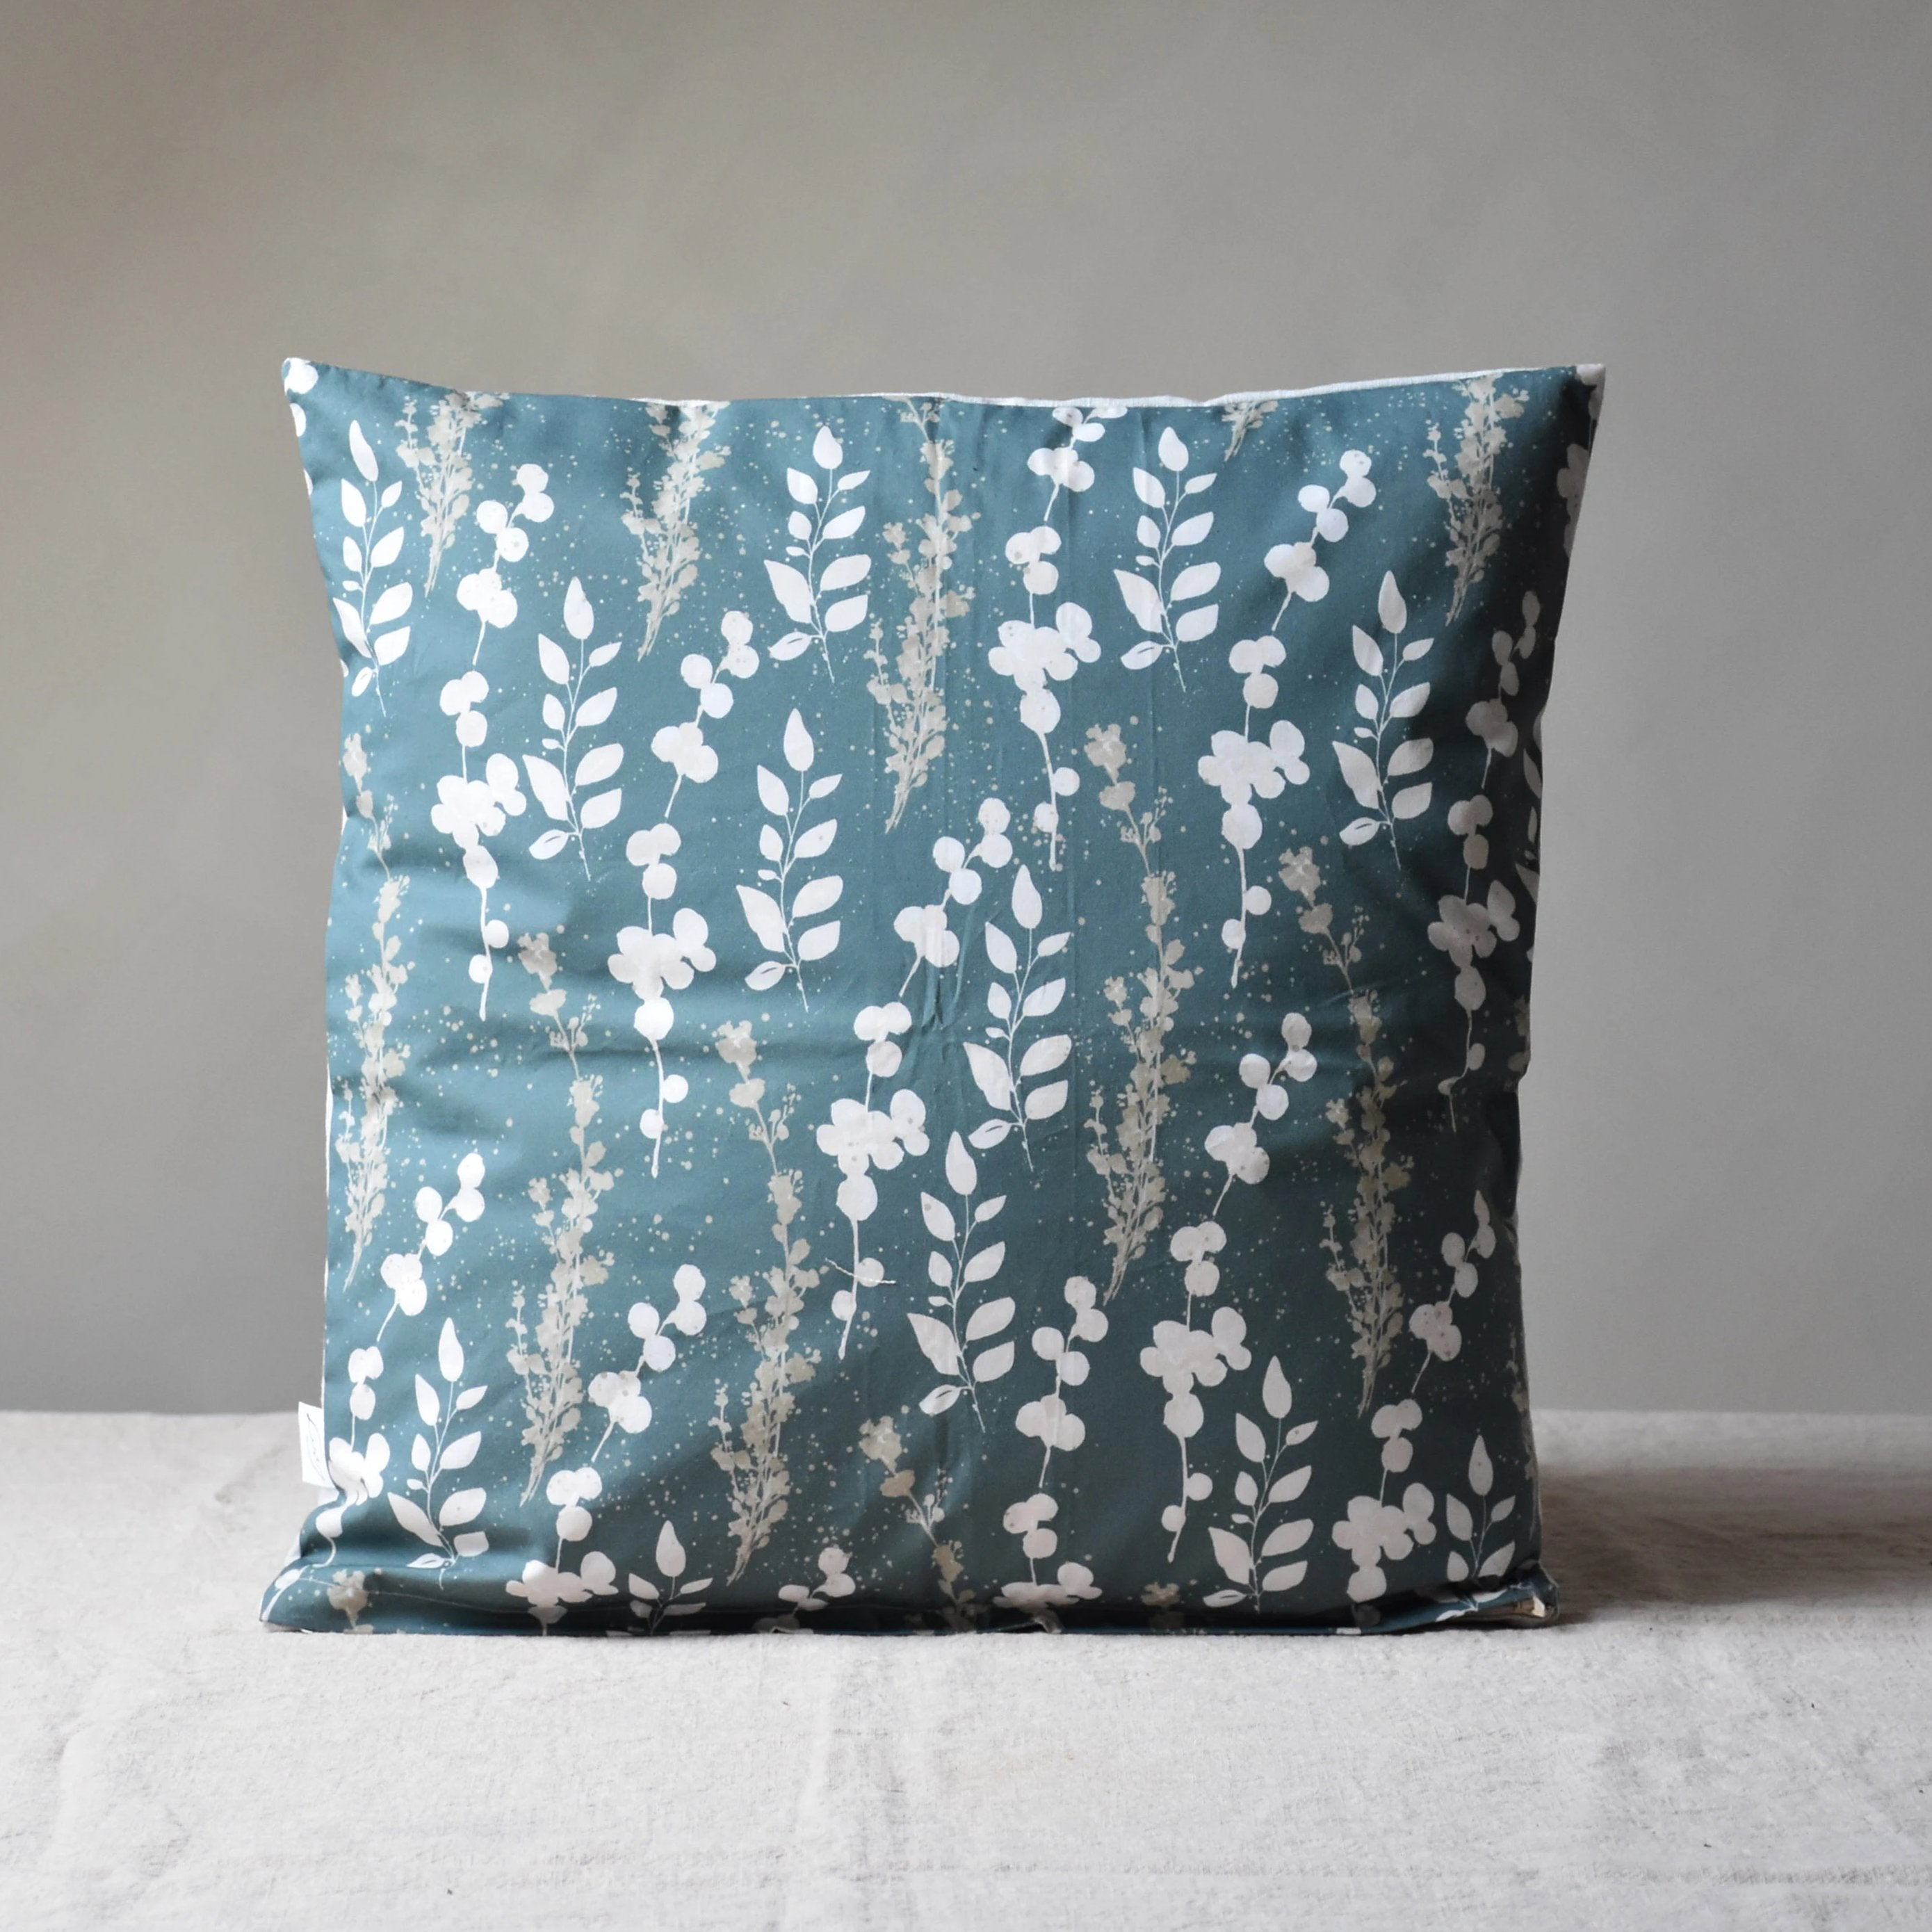 Cushion cover - Moon flowers in green